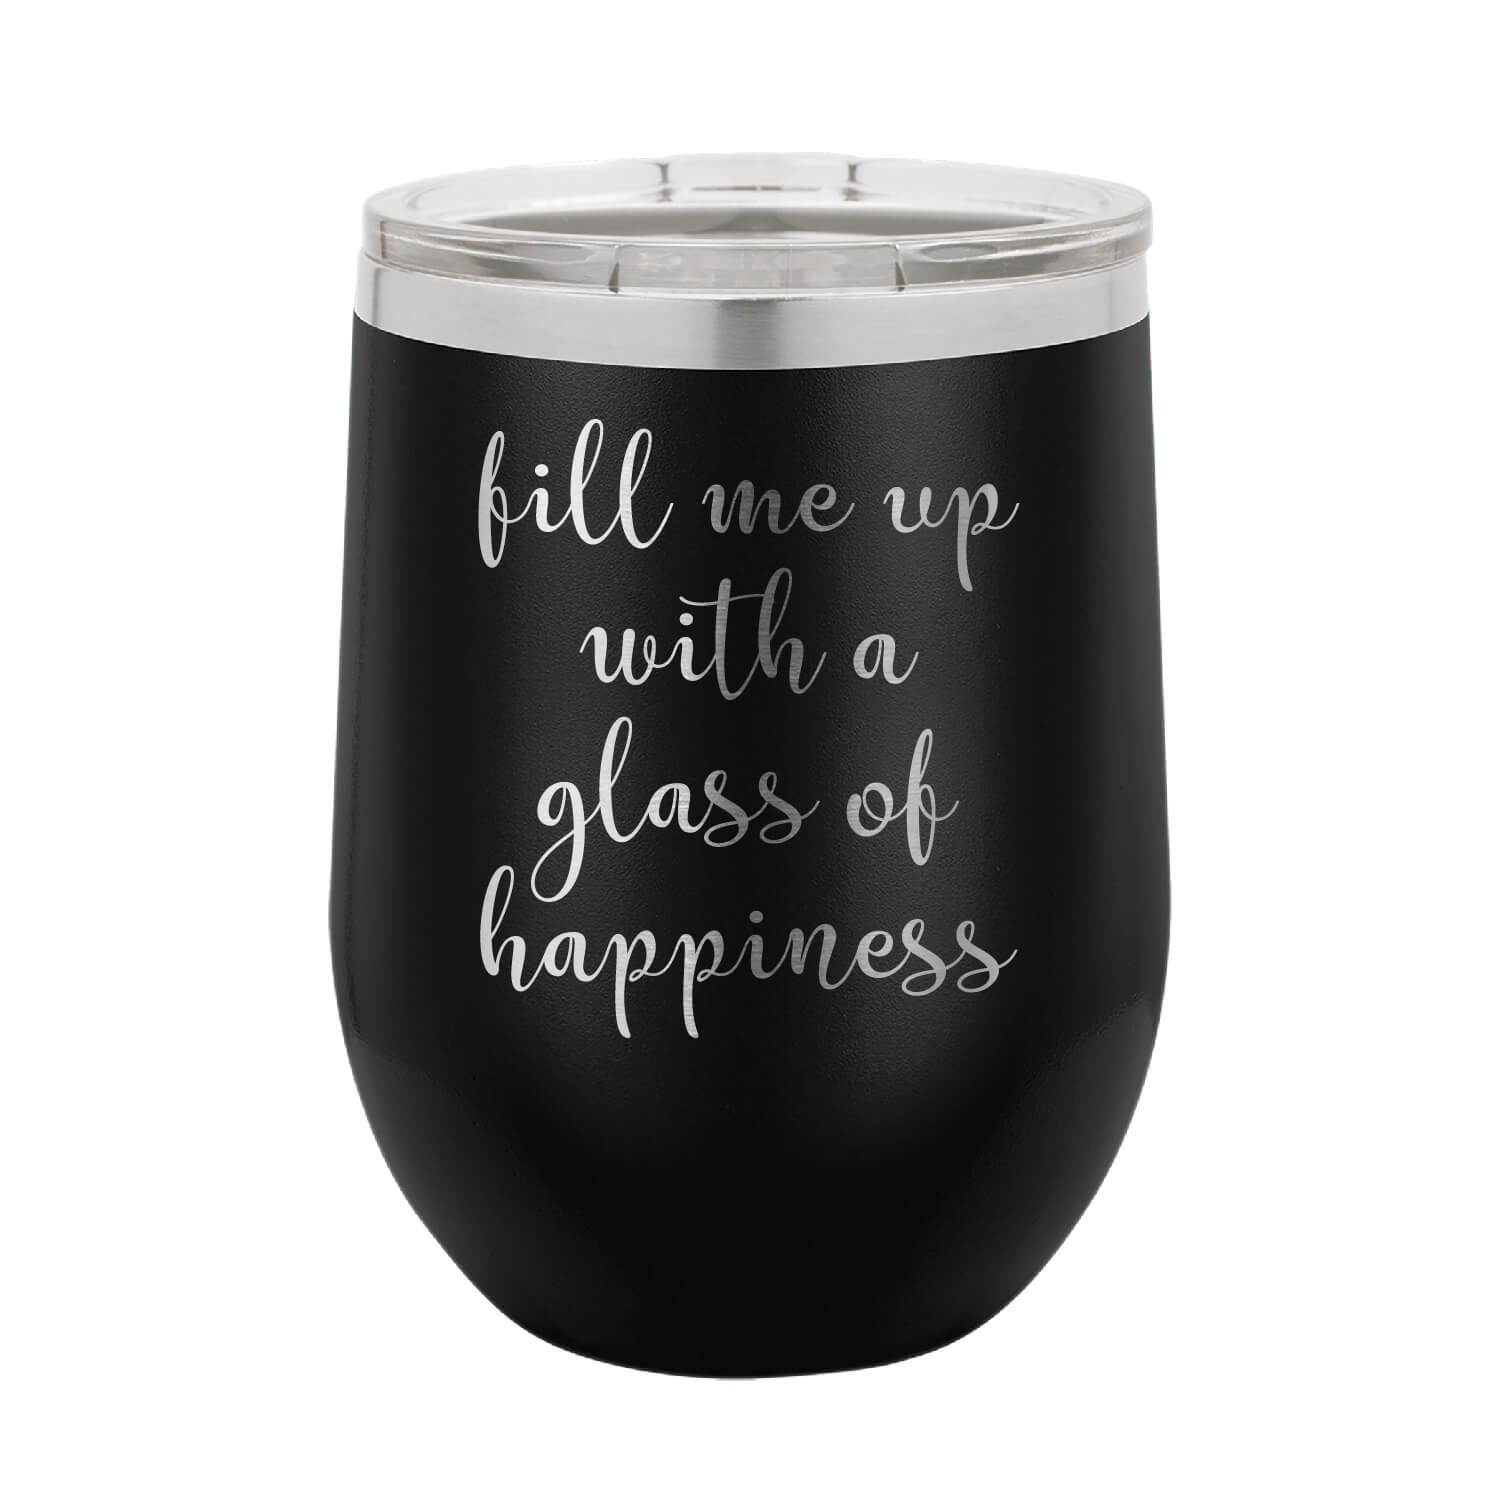 Fill Me Up With a Glass of Happiness Wine Tumbler